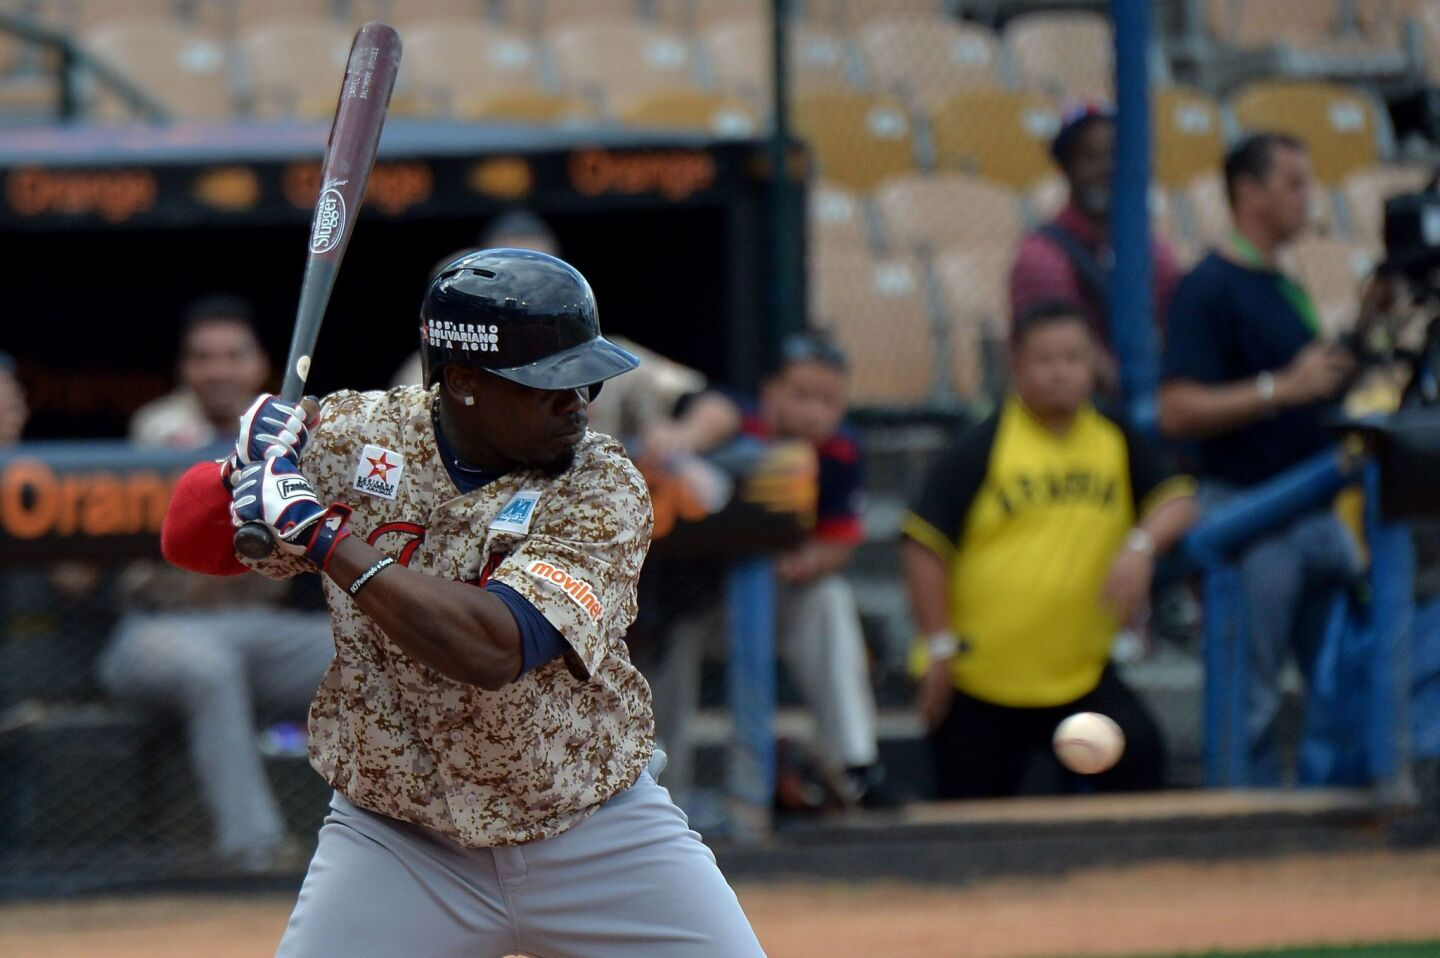 Adonis Garcia of Venezuela hits against Cuba during their 2016 Caribbean Baseball Series game in Santo Domingo, Dominican Republic, on February 4, 2016. AFP PHOTO/YAMIL LAGEYAMIL LAGE/AFP/Getty Images ** OUTS - ELSENT, FPG, CM - OUTS * NM, PH, VA if sourced by CT, LA or MoD **